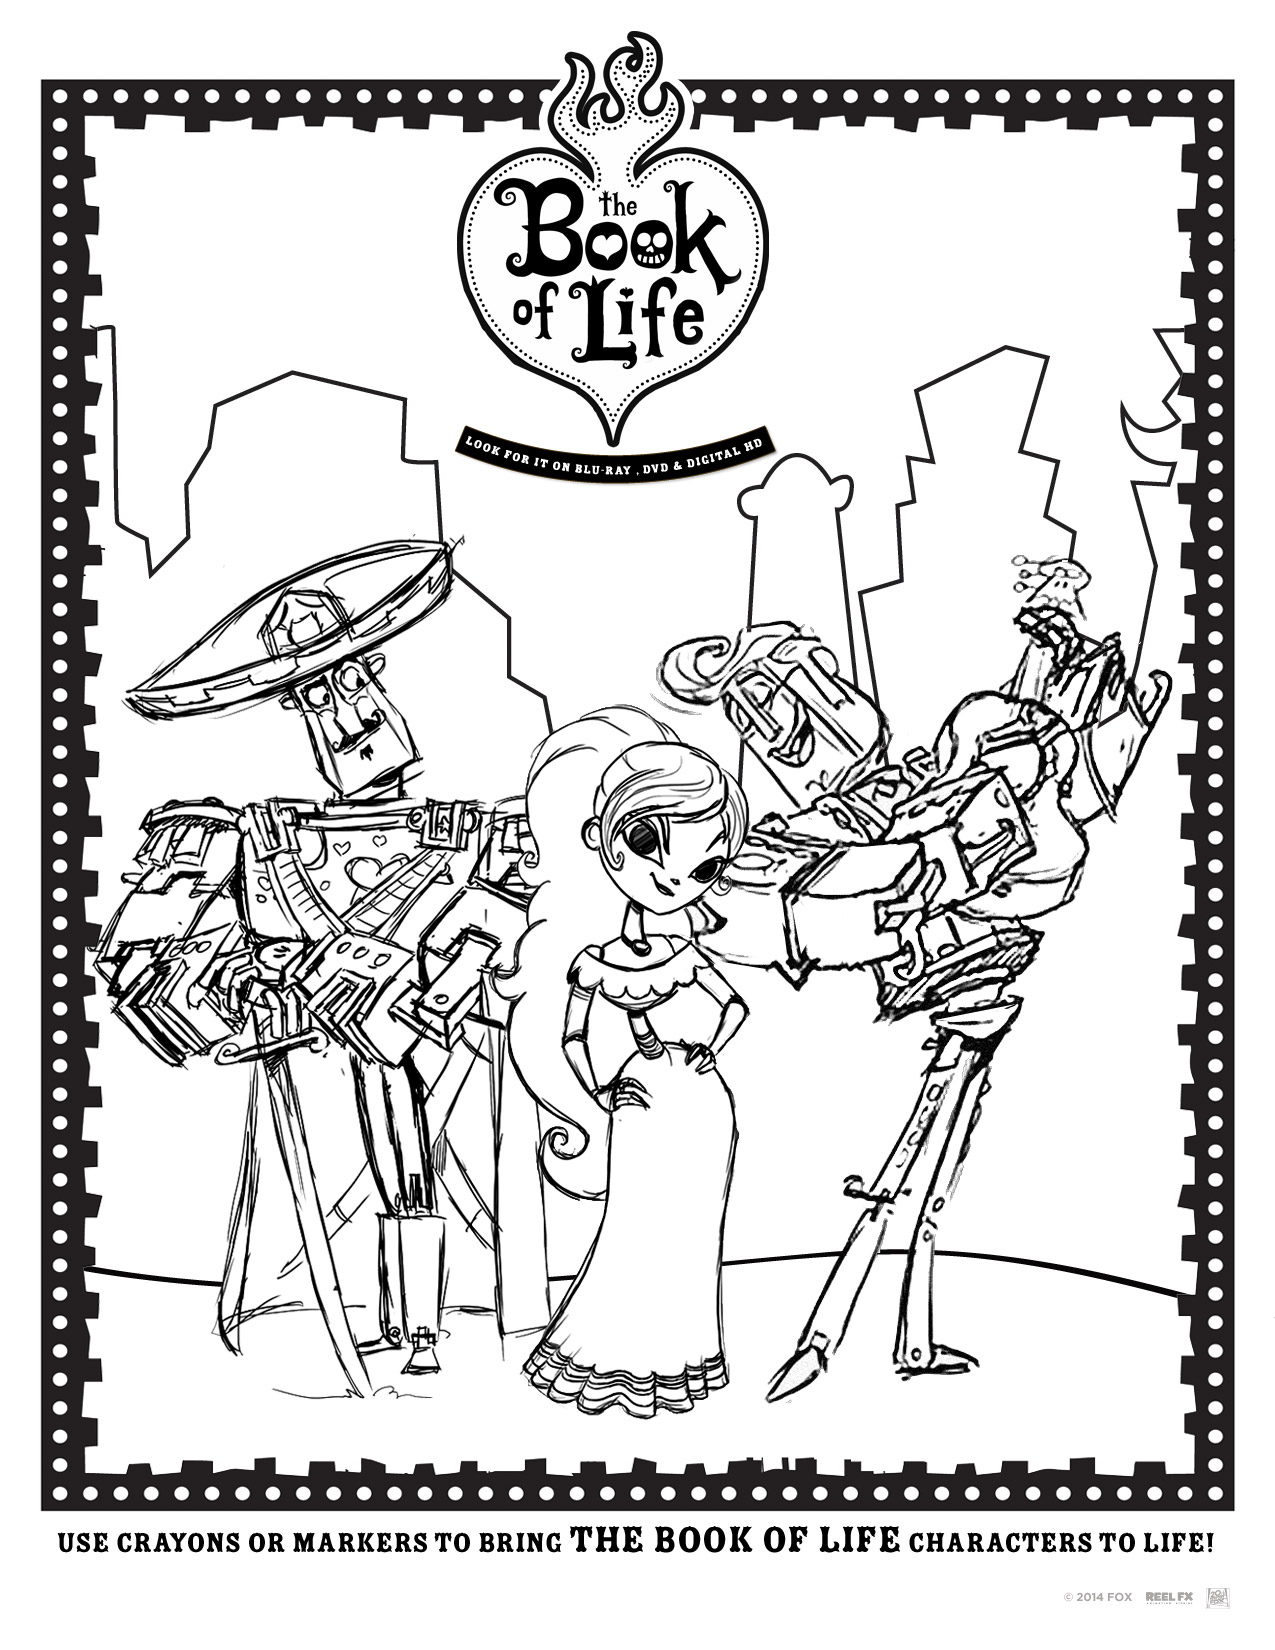 Free Coloring Pages for Kids The Book of Life